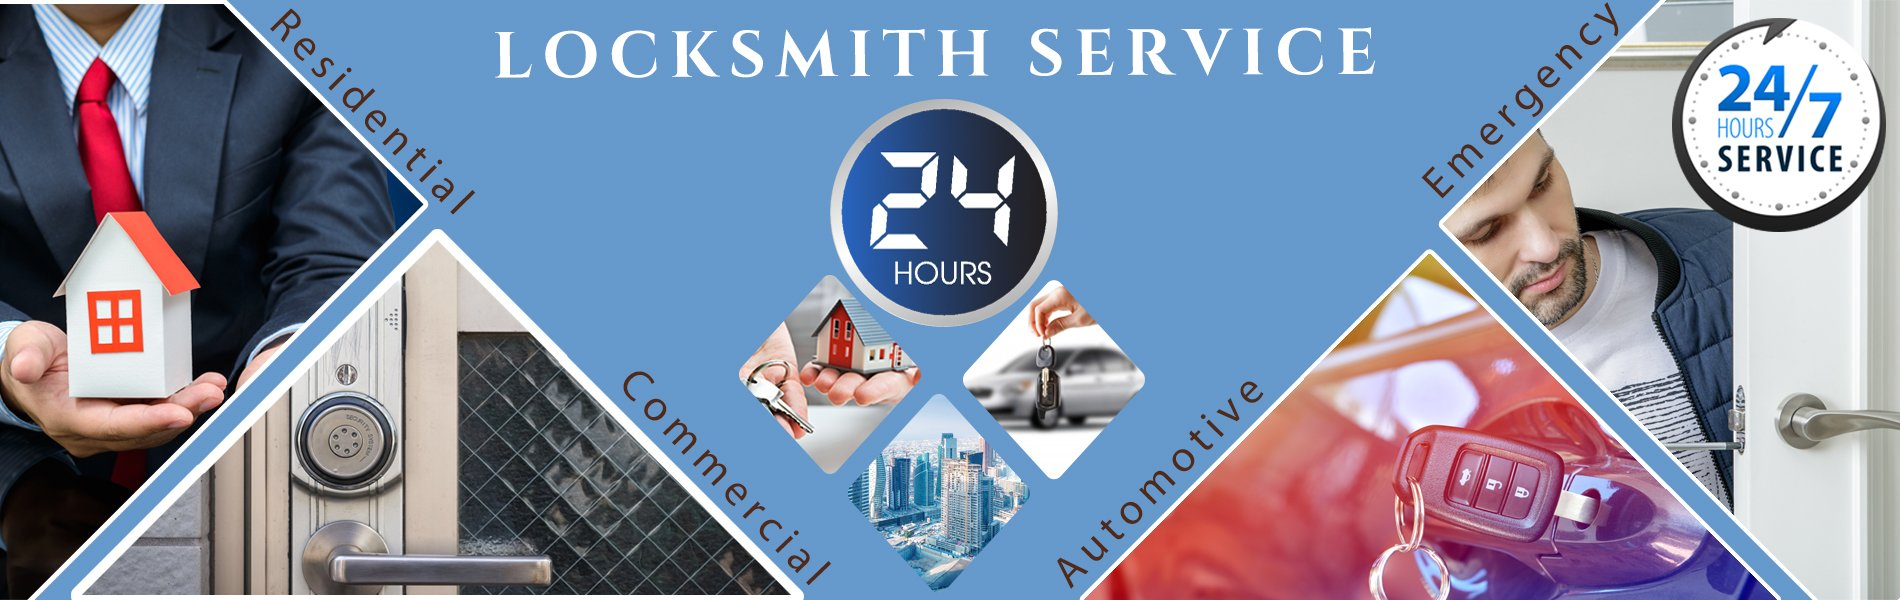 State Locksmith Services Denver, CO 303-729-3952